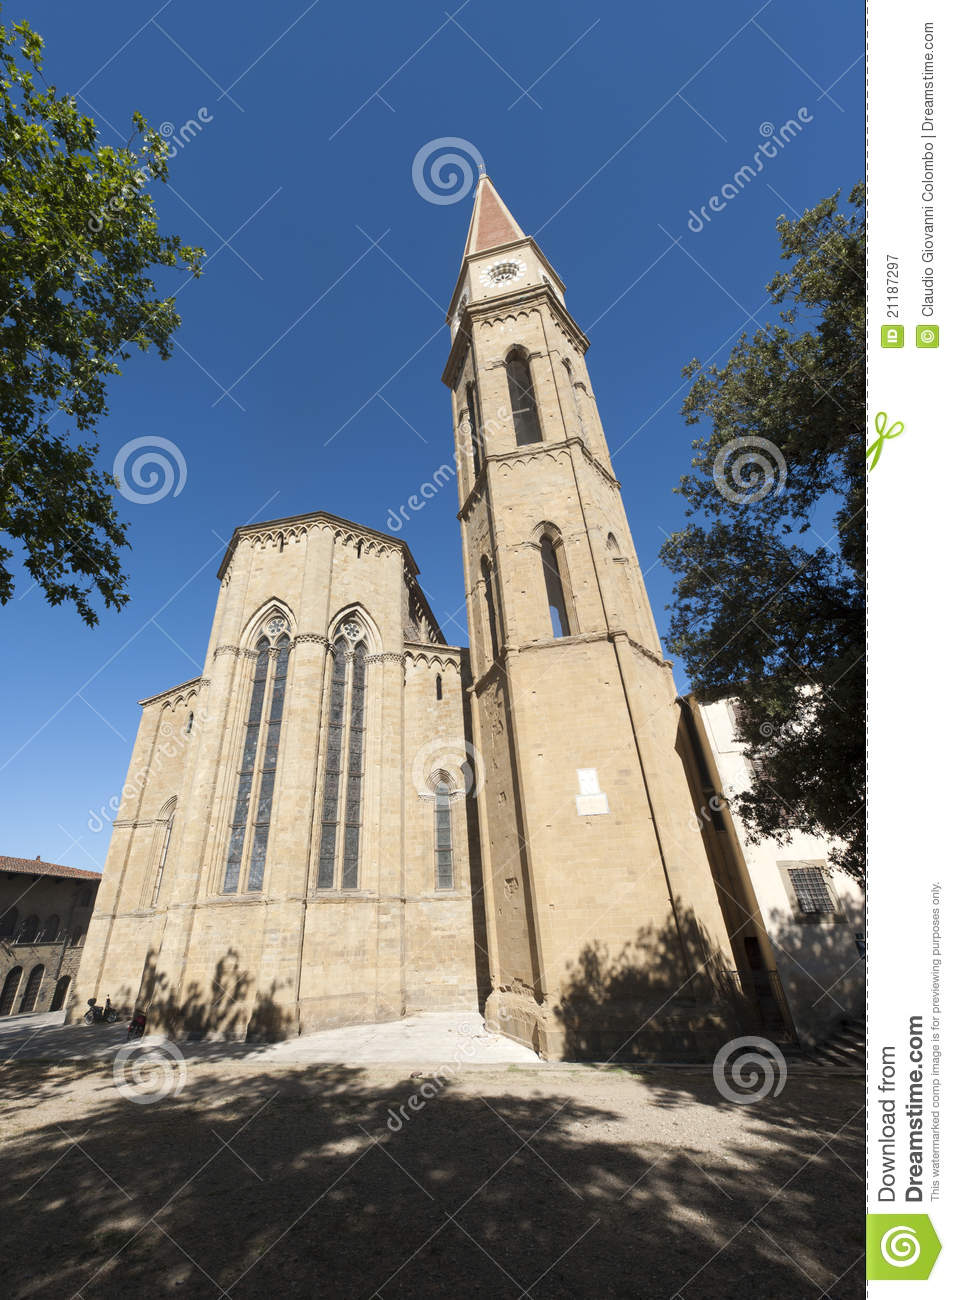 Medieval cathedral in Arezzo (Tuscany)